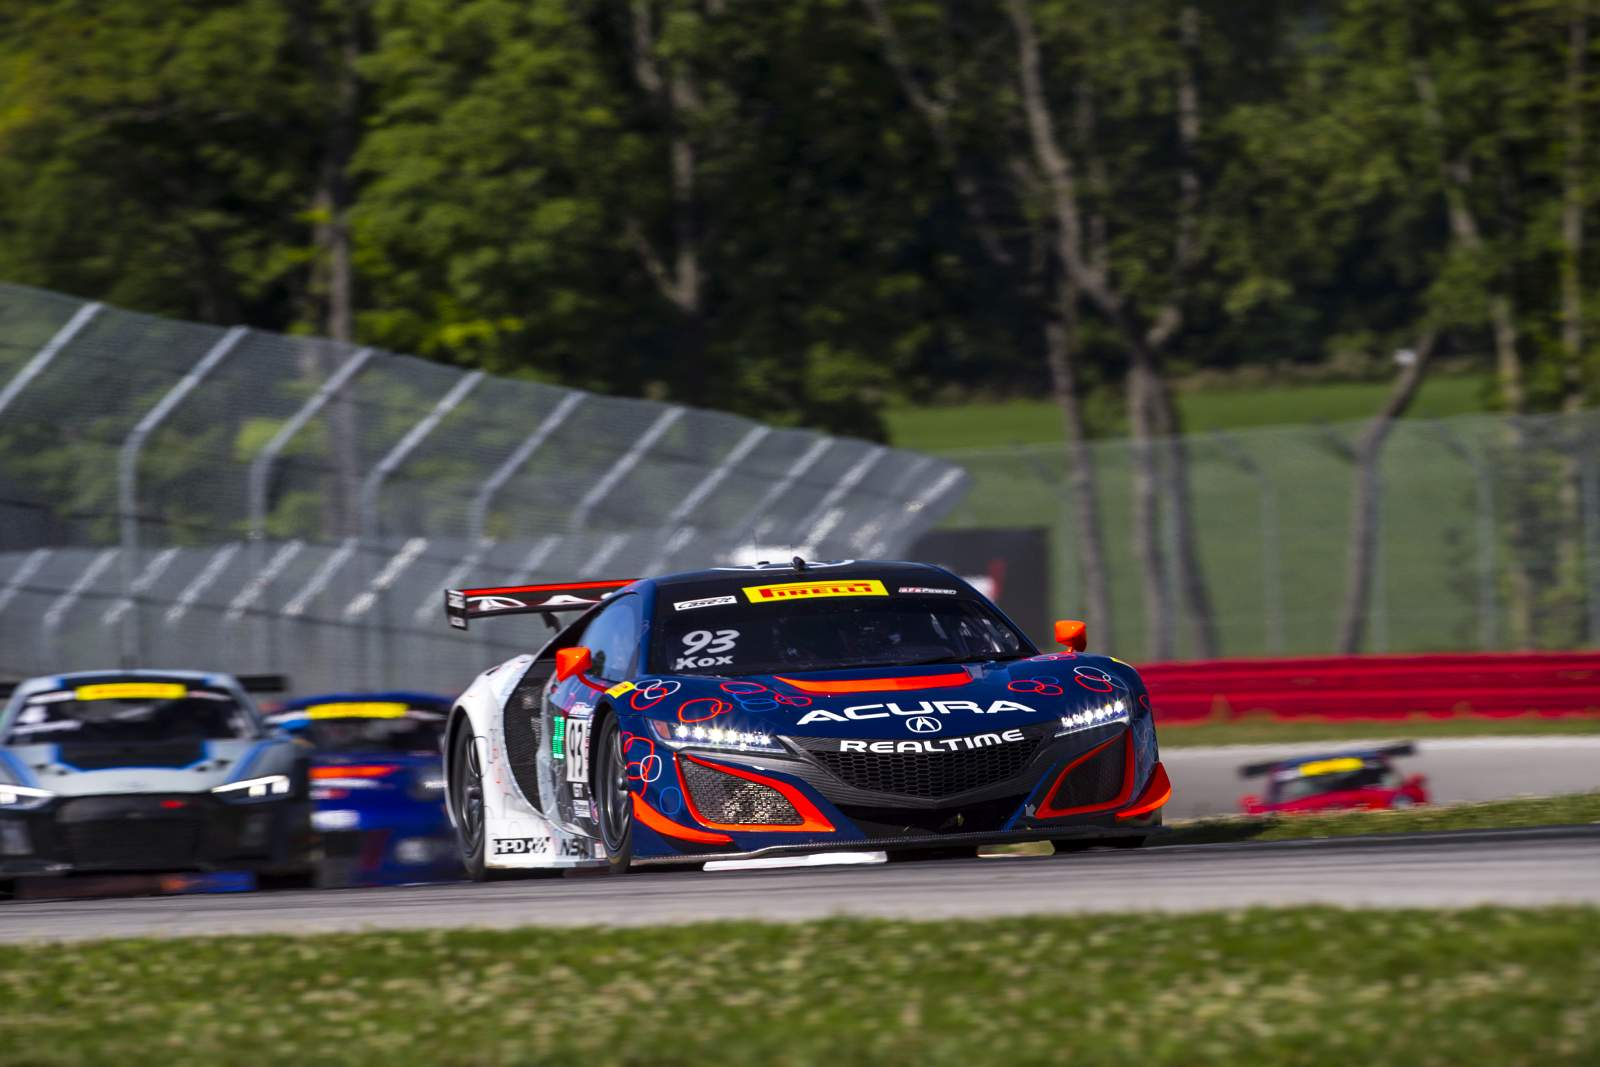 peter-kox-realtime-racing-pirelli-world-challenge-mid-ohio-43